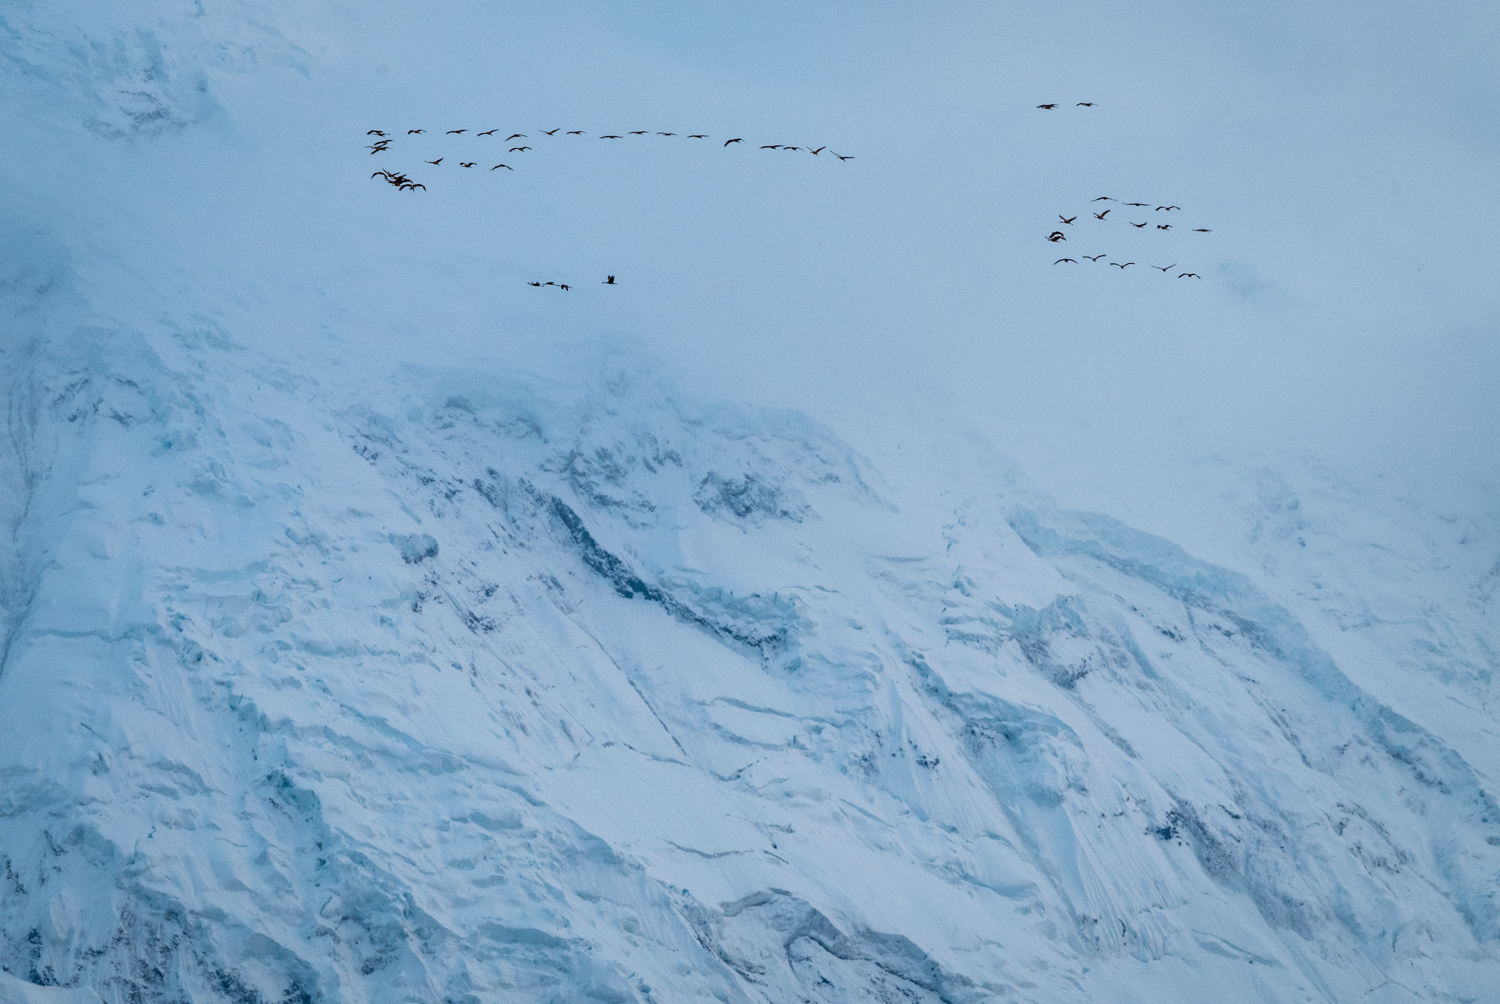 Review of the Olympus 300mm F4 PRO Lens - birds in flight and snowy mountain